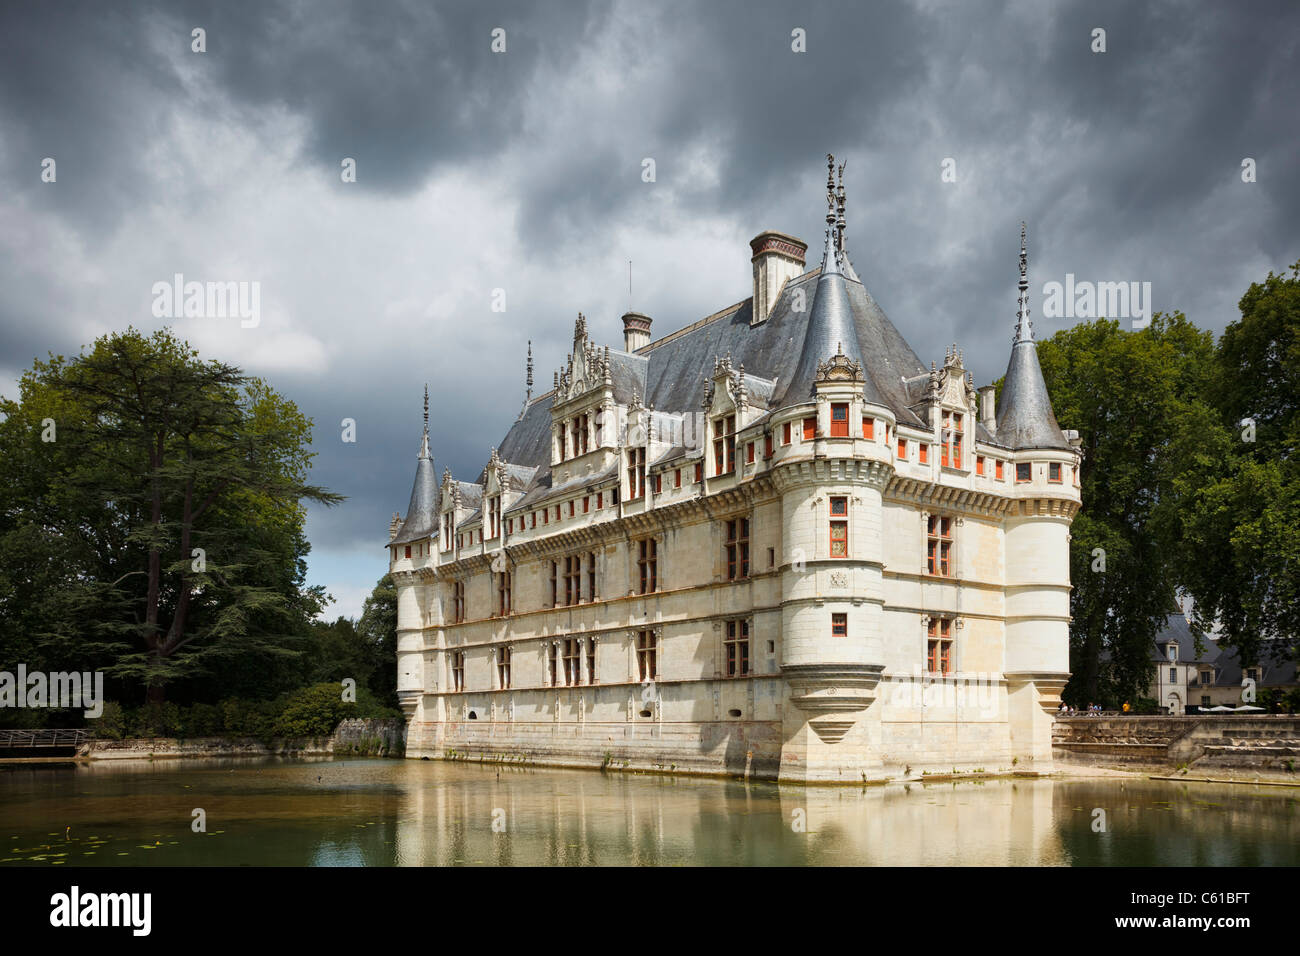 France: Chateau at Azay-le-Rideau, Indre et Loire, France, Europe - Stock Image